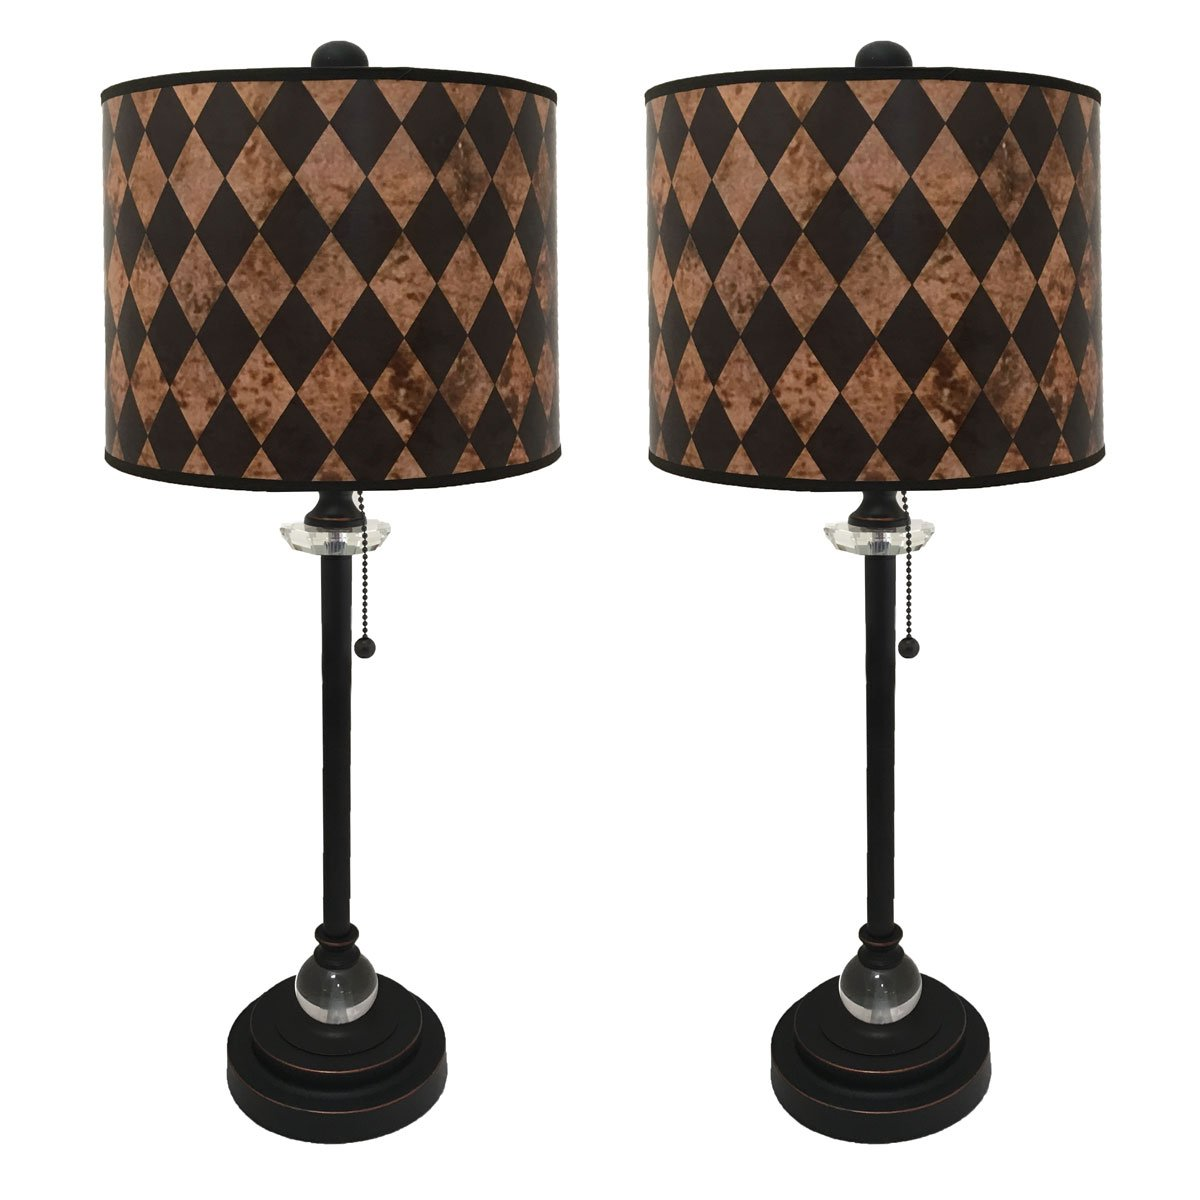 Royal Designs 28'' Crystal and Oil Rub Bronze Buffet Lamp with Vertical Black Diamond on Papyrus Design Hard Back Lamp Shade, Set of 2 by Royal Designs, Inc